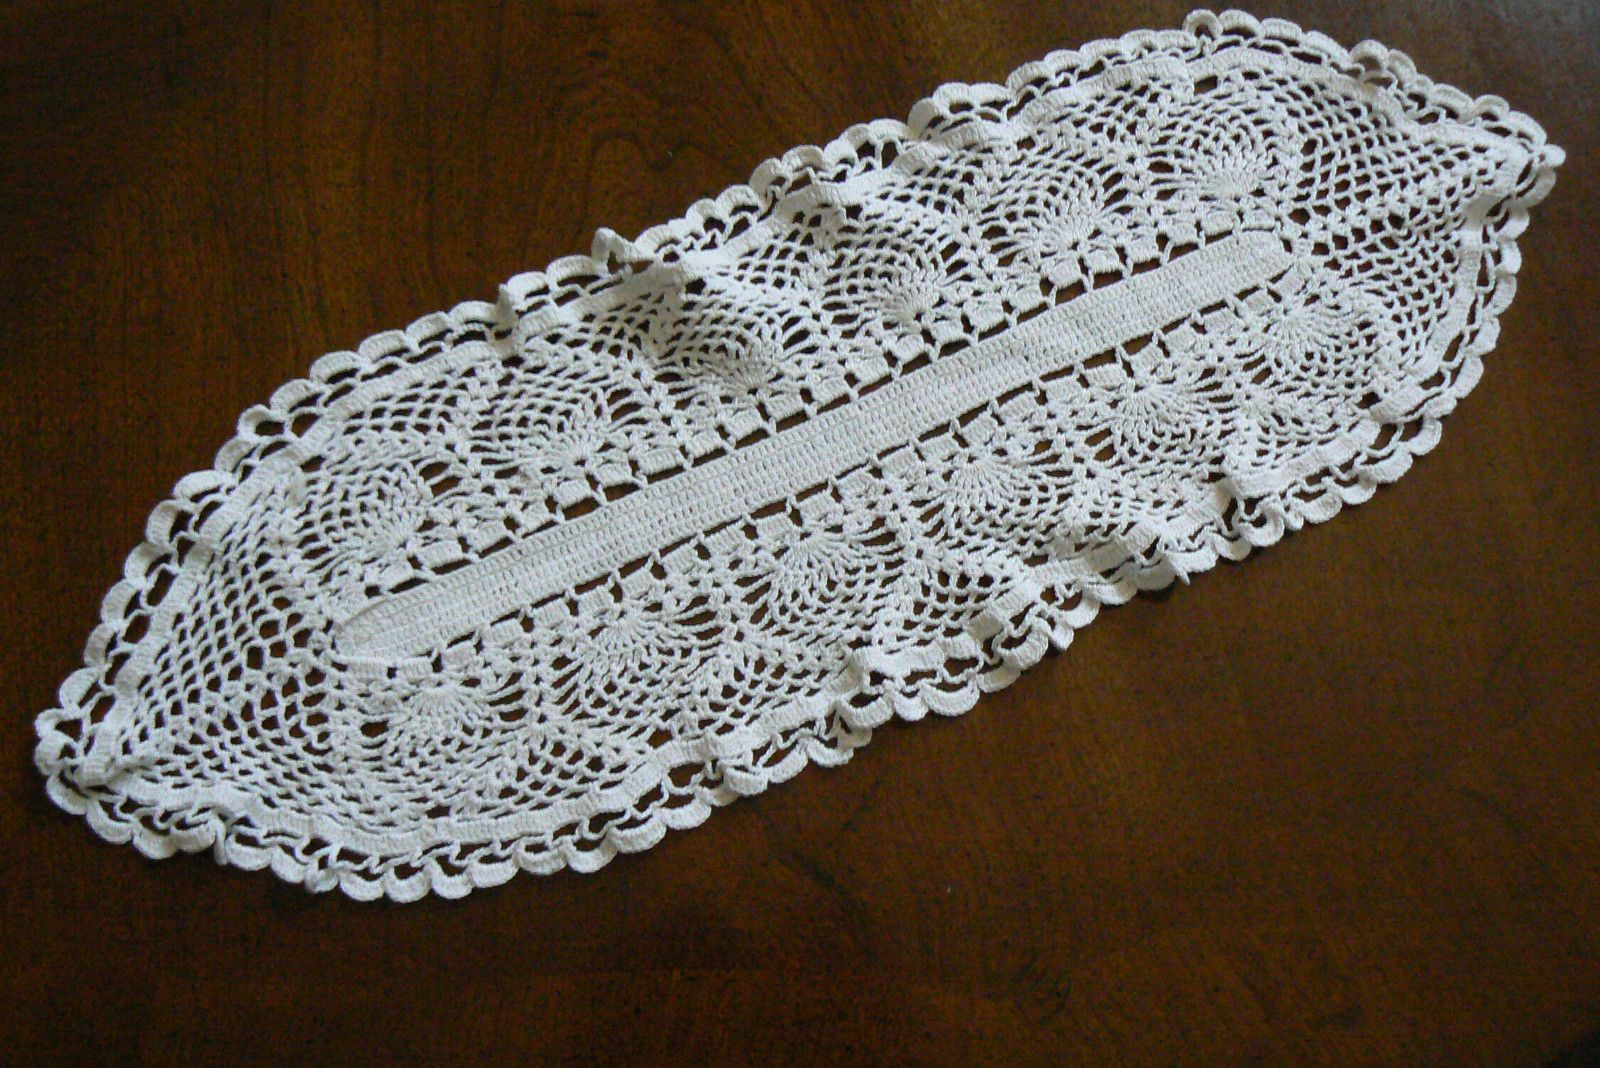 Antique Vtg Crochet Lace Table Runner Doily Center Mat Dresser Decor